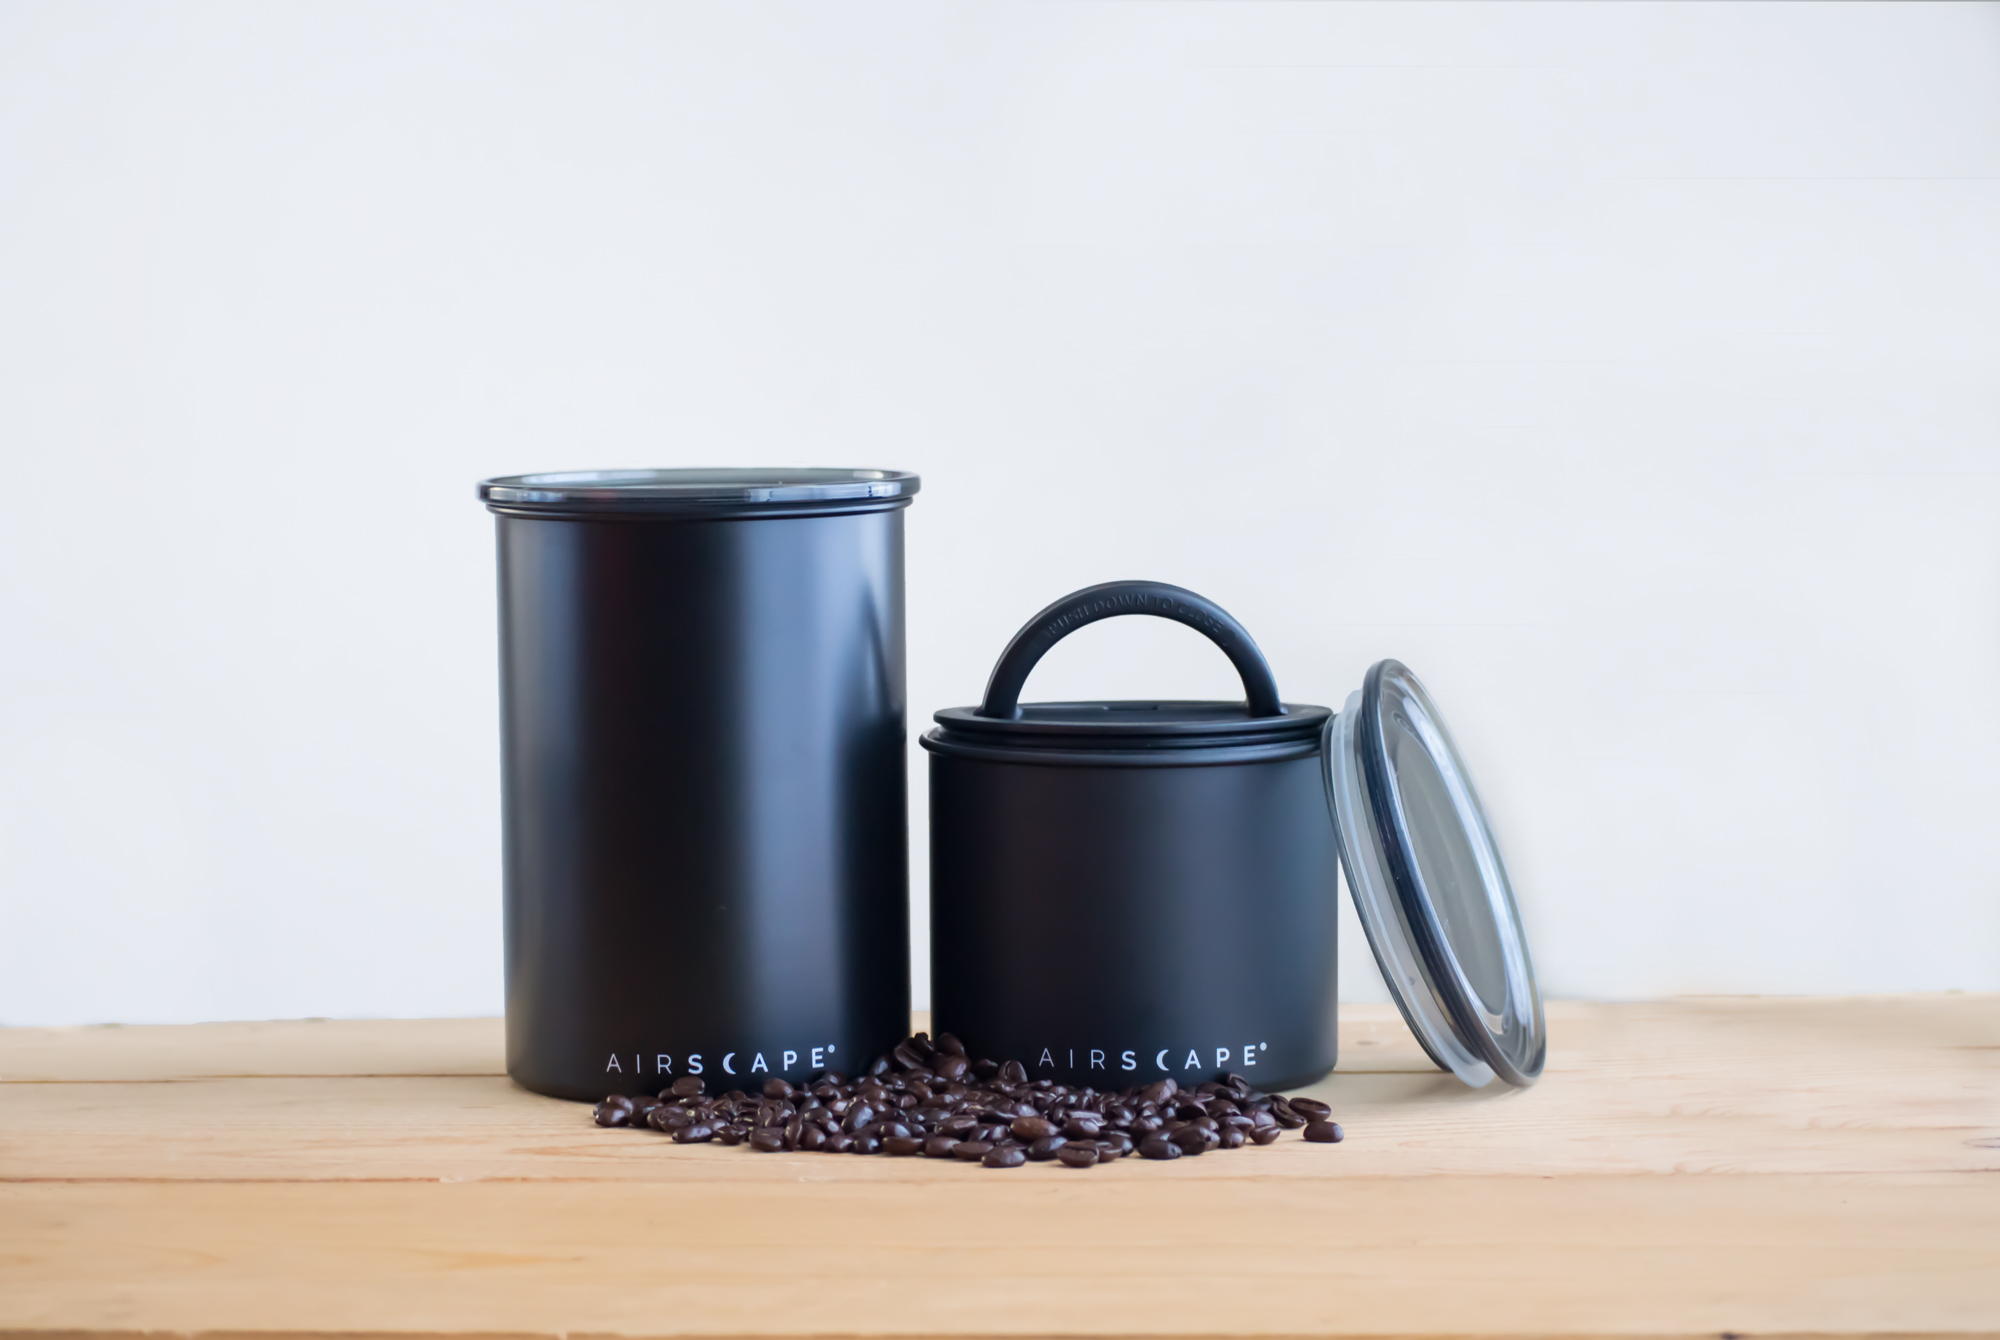 Photo of matte black Airscape small and medium kitchen canisters on counter